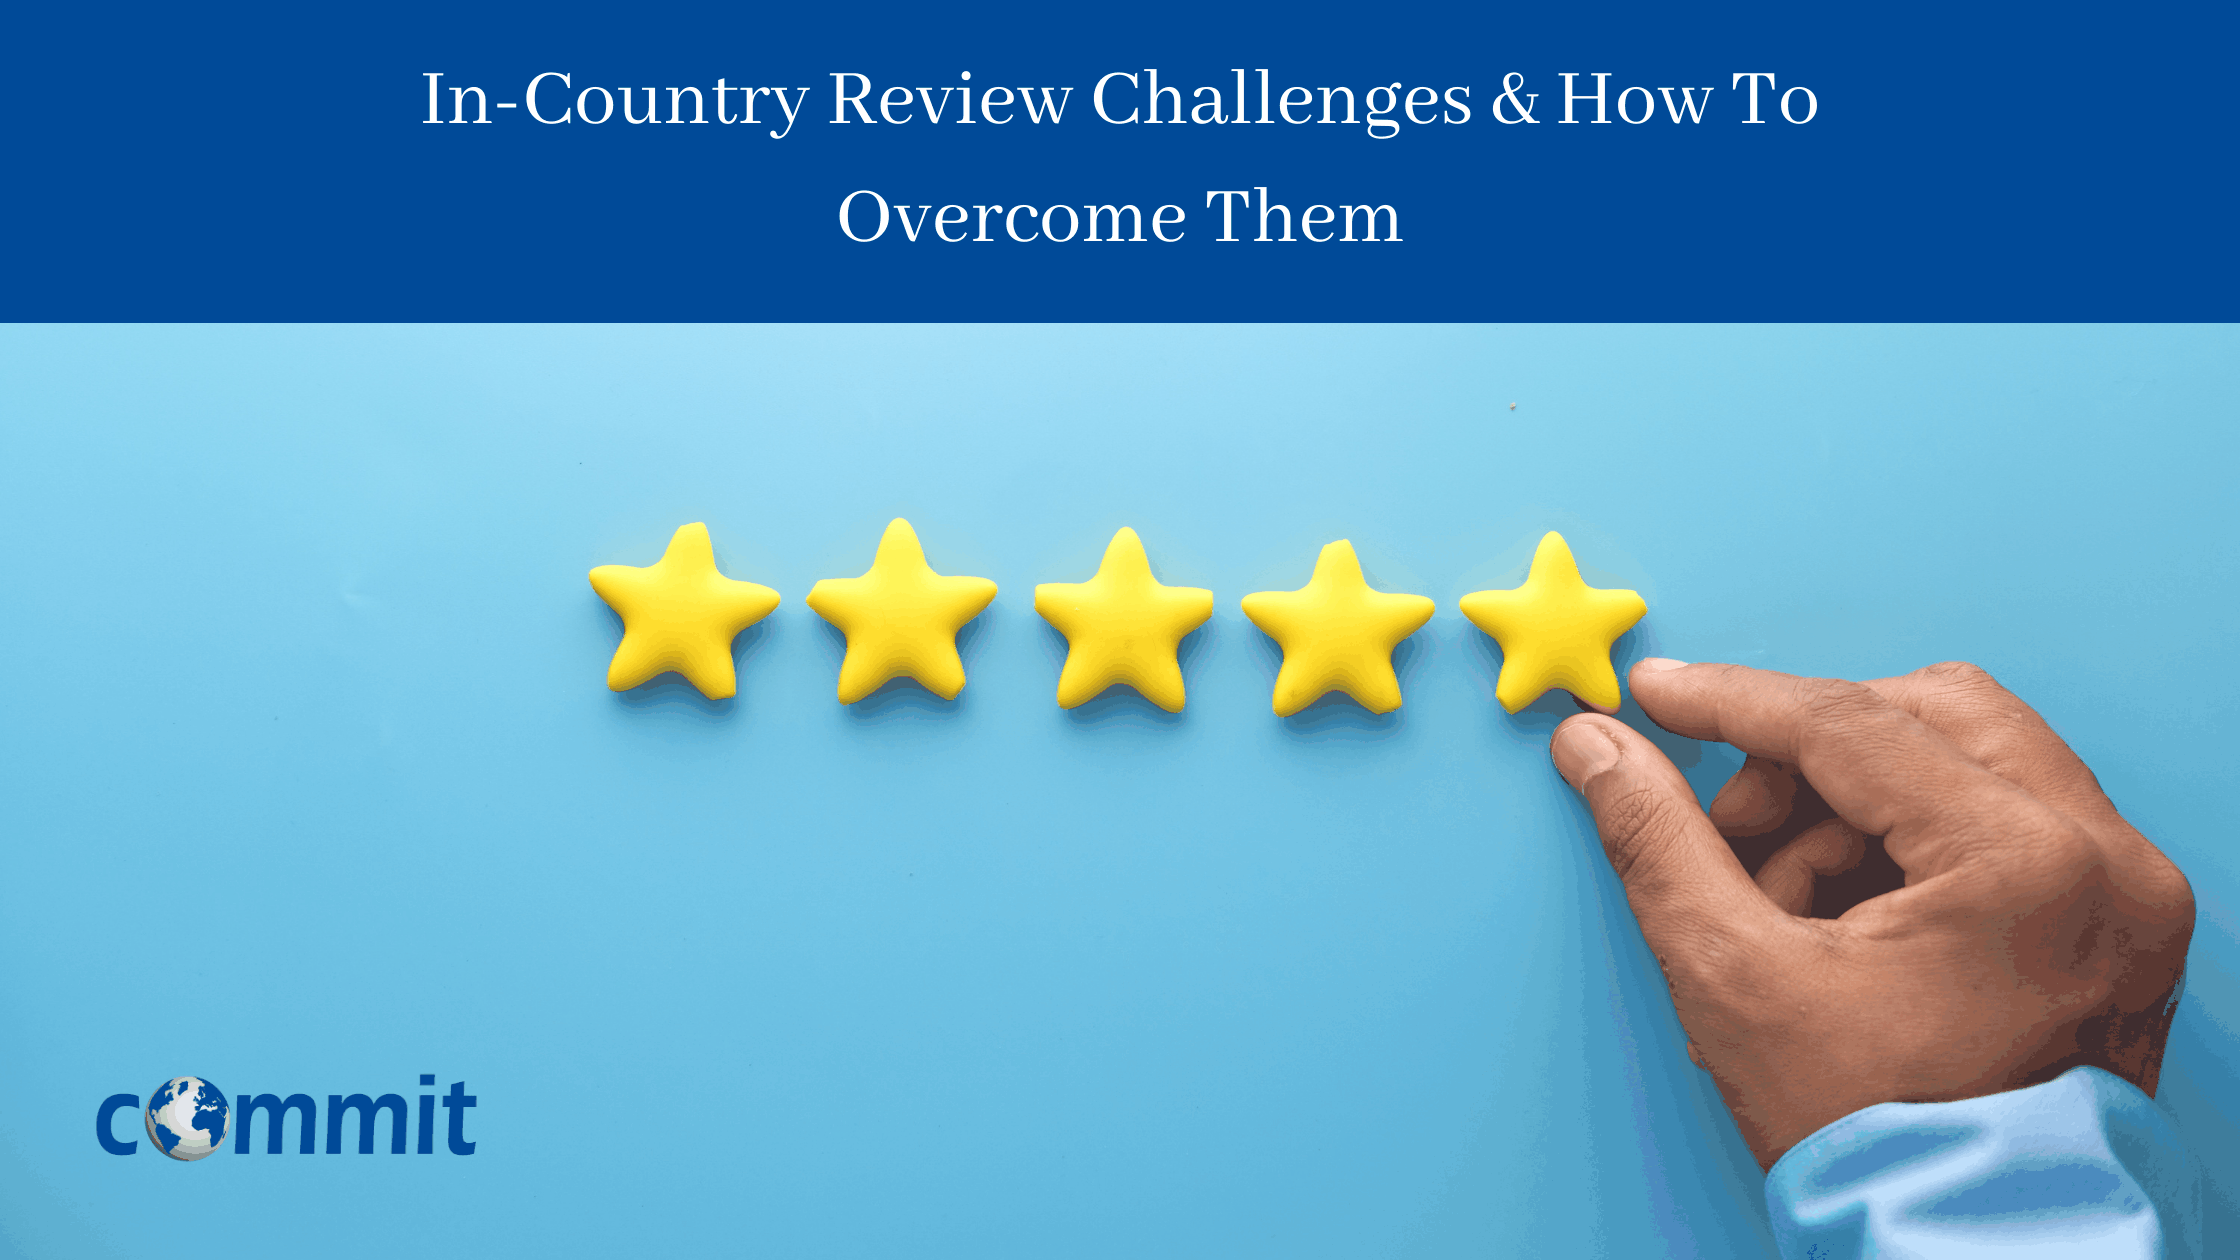 In-Country Review Challenges & How To Overcome Them